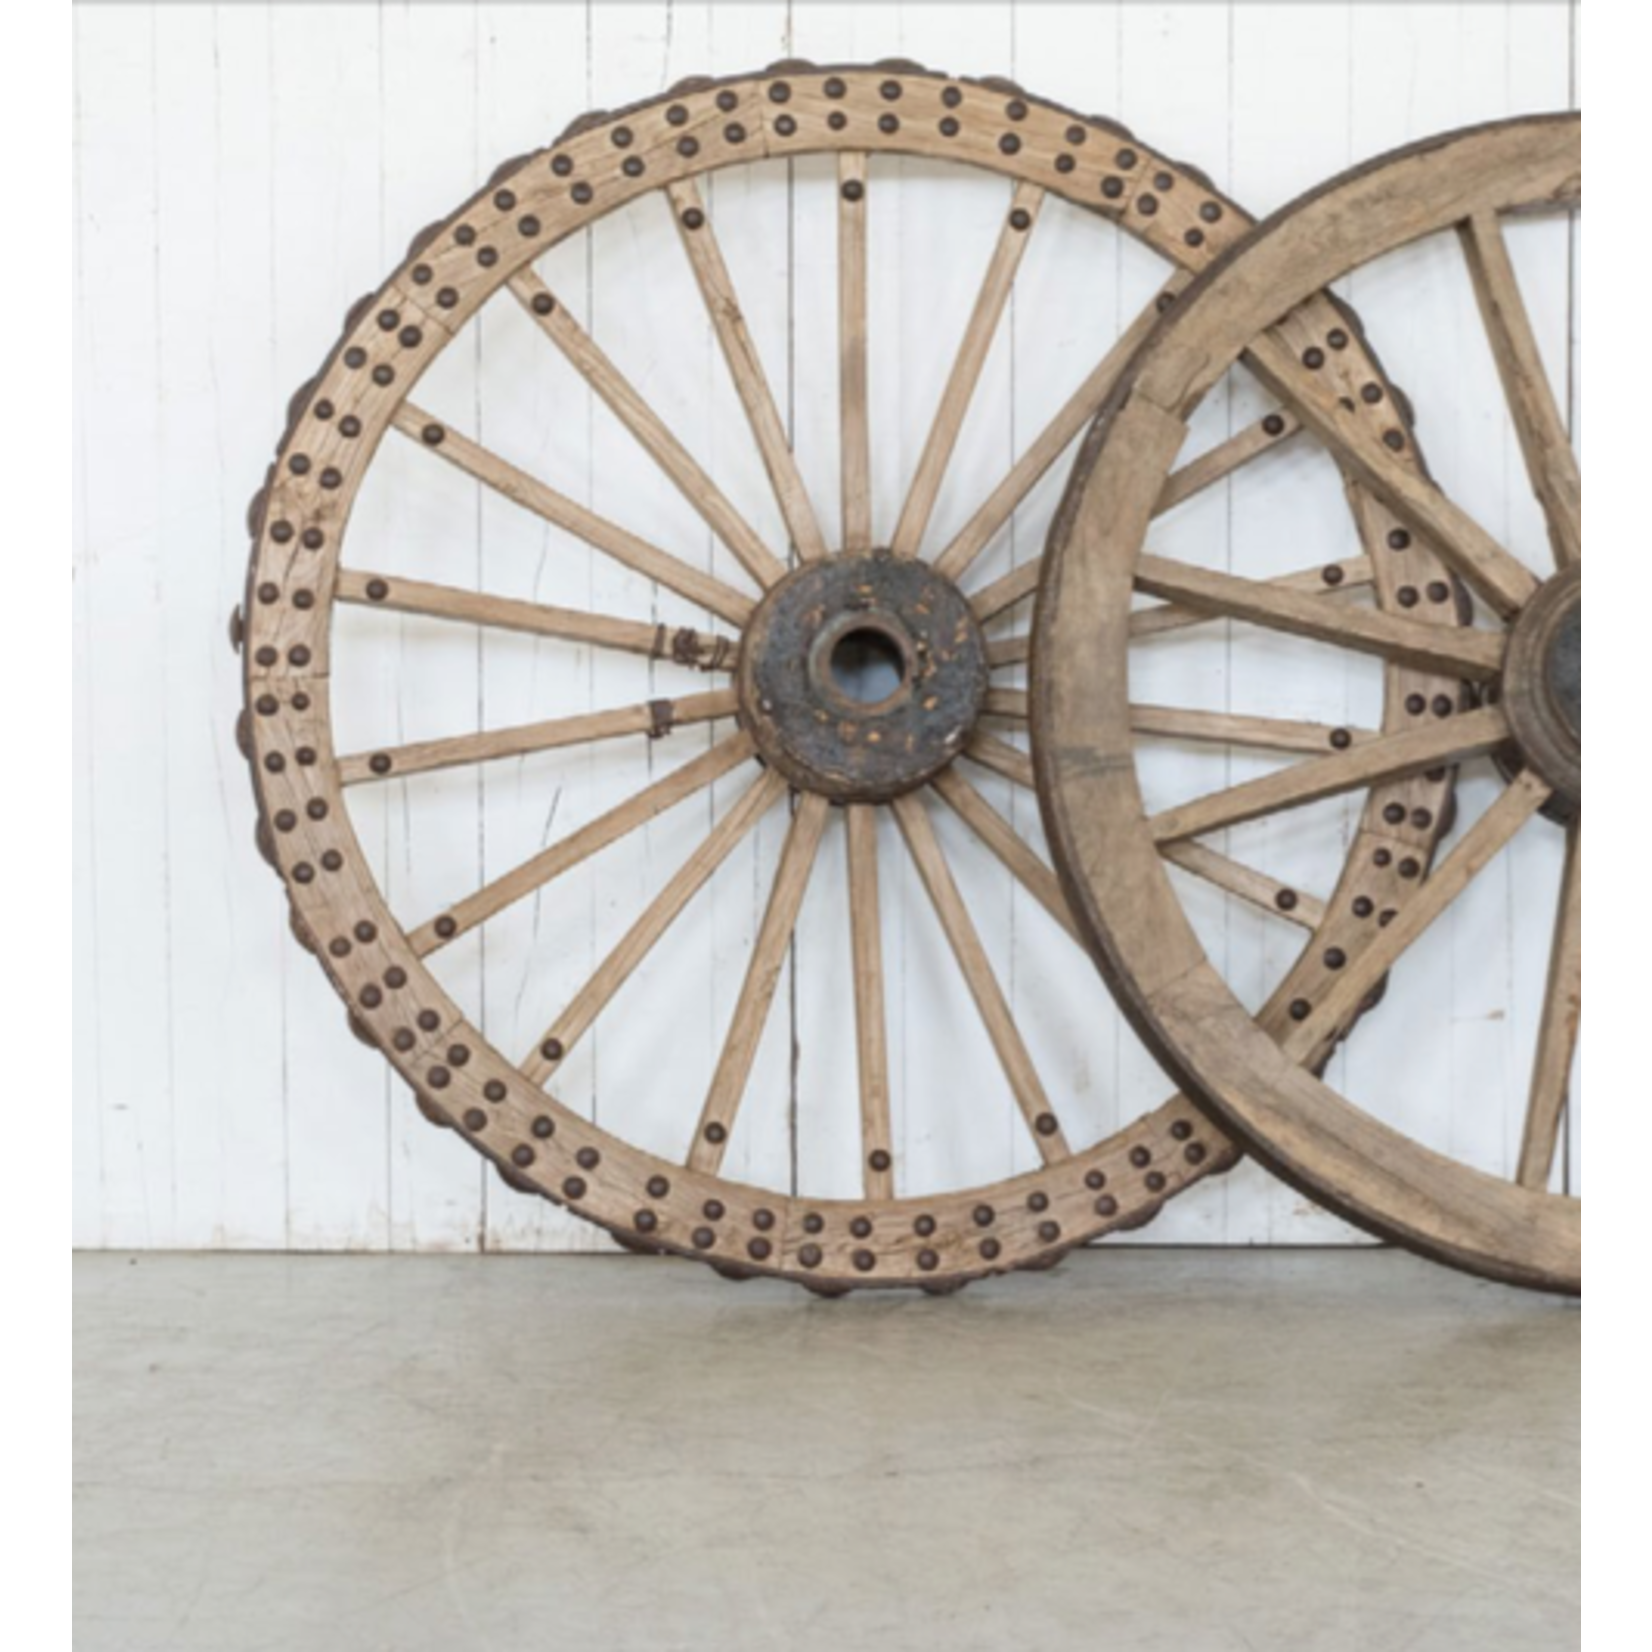 VAN THIEL ANTIQUE WAGON WHEEL